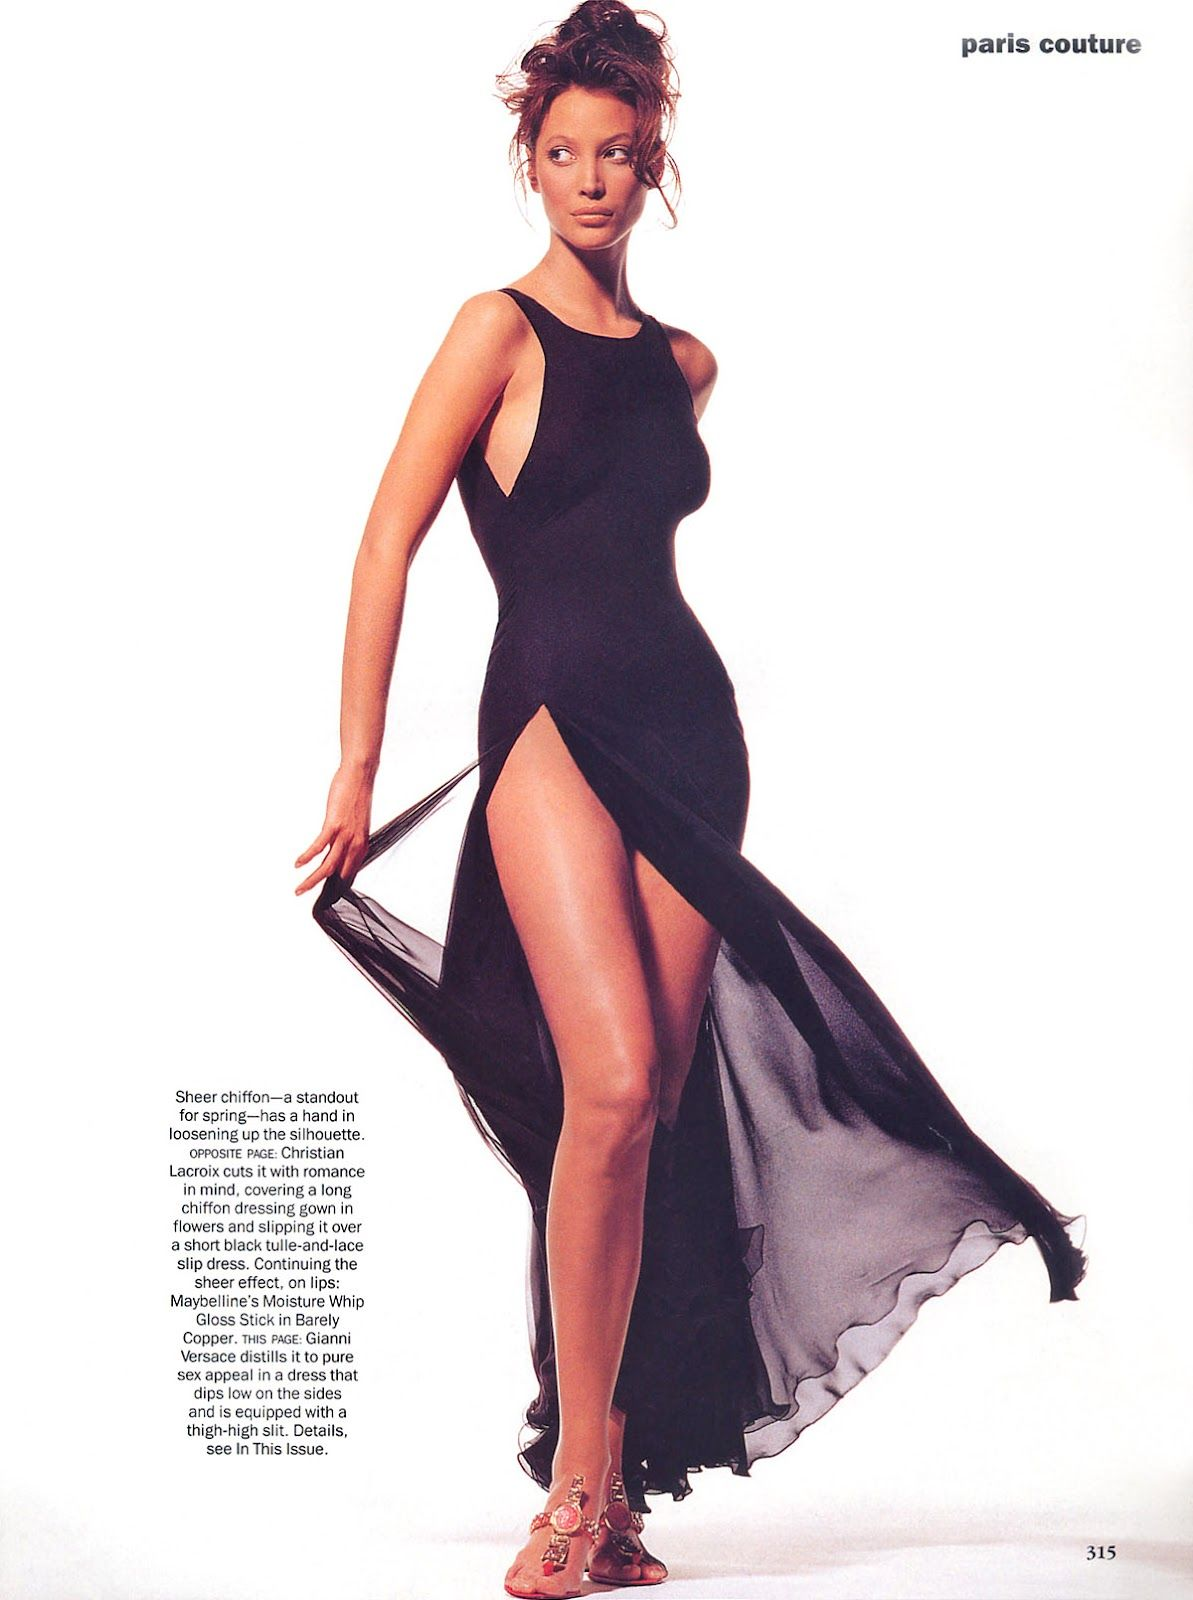 Christy Turlington | Photography by Irving Penn | For Vogue Magazine US | March 1993